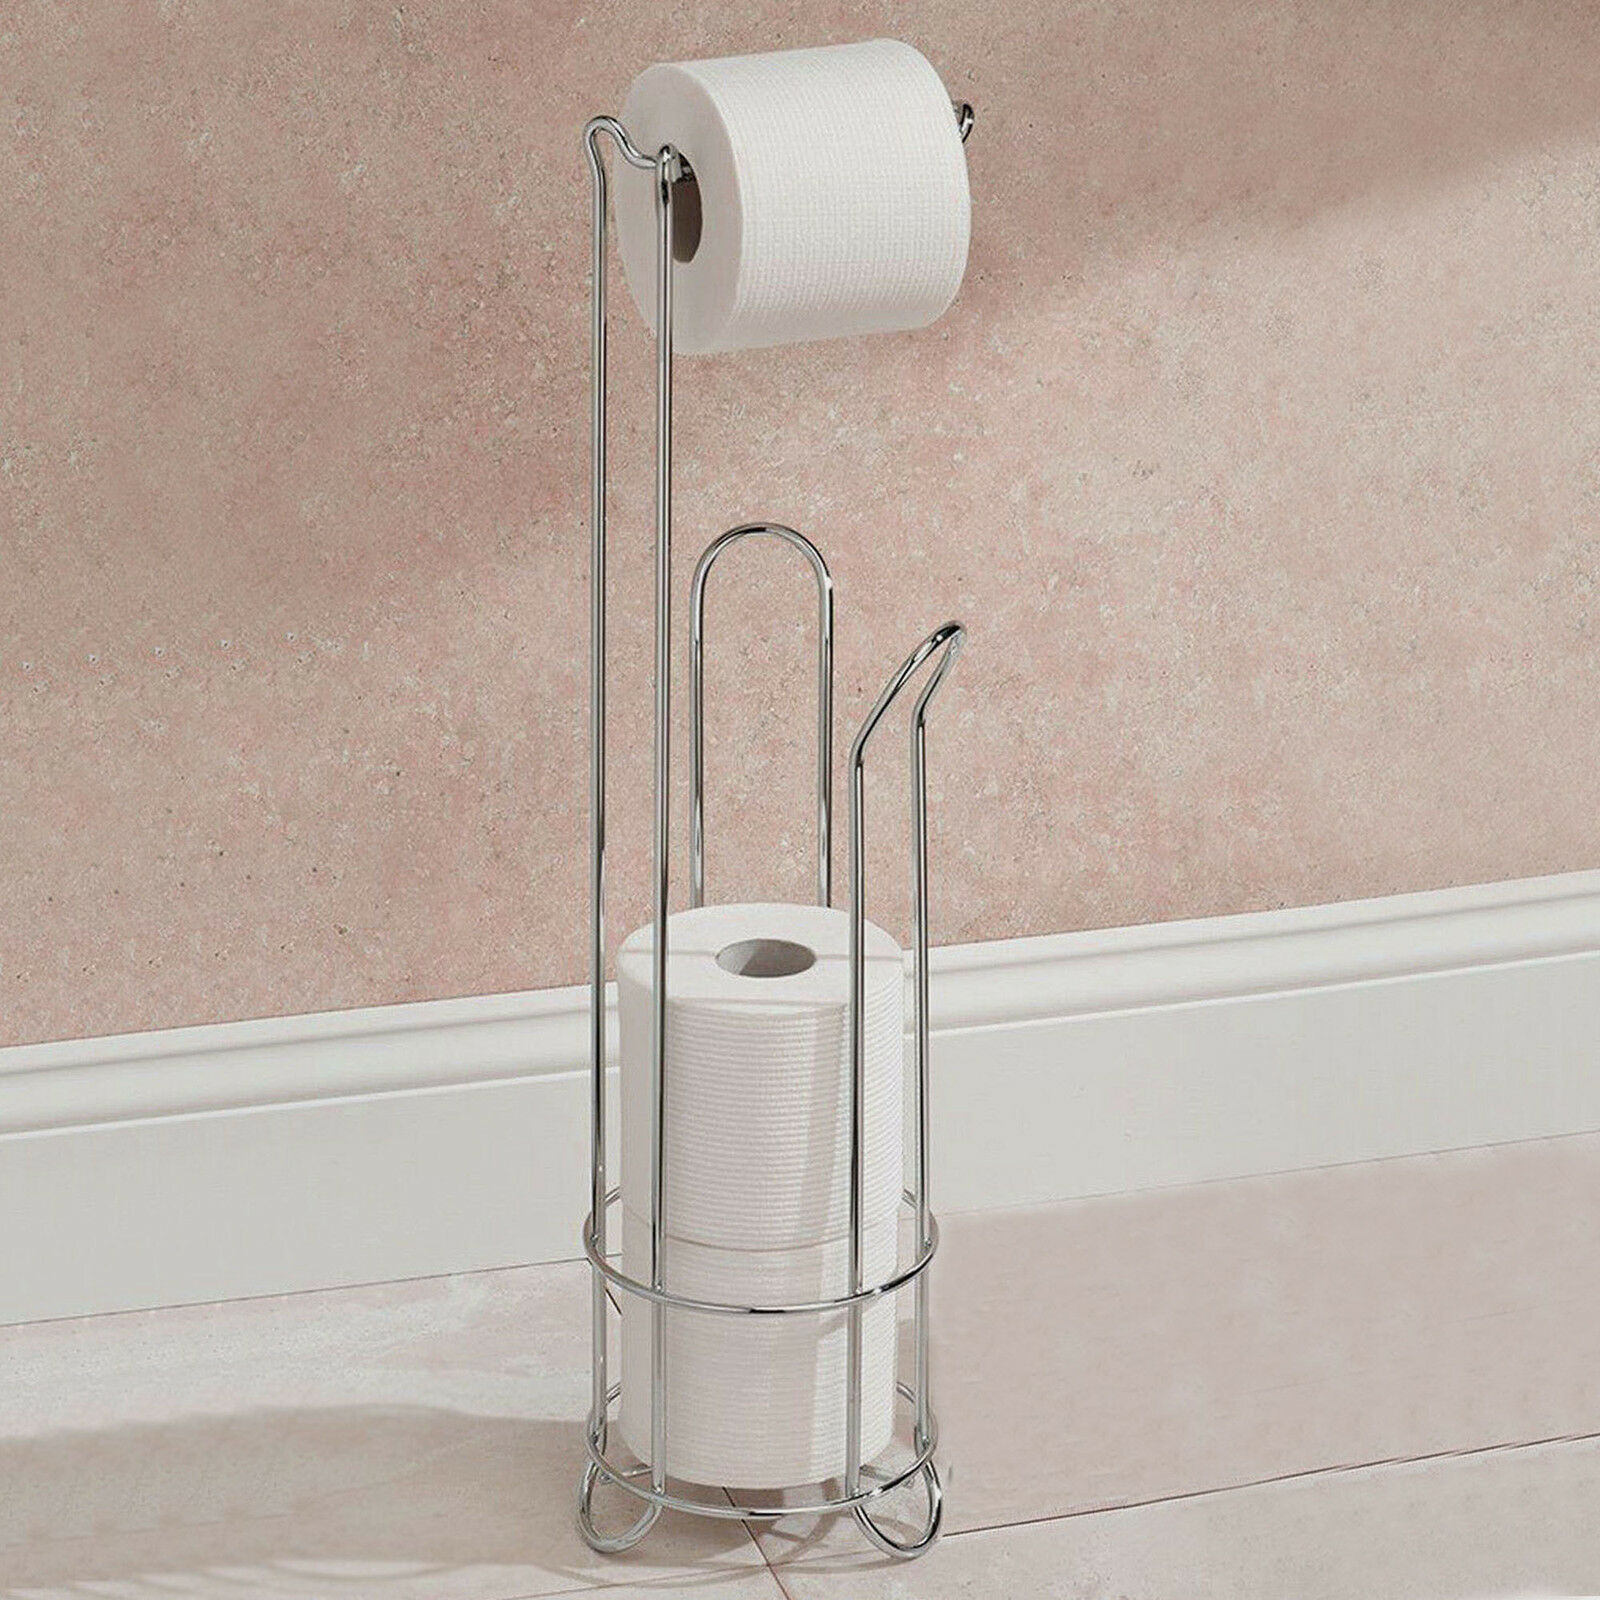 Bathroom Toilet Holder New Chrome Wire Frame Freestanding Bathroom Toilet Paper